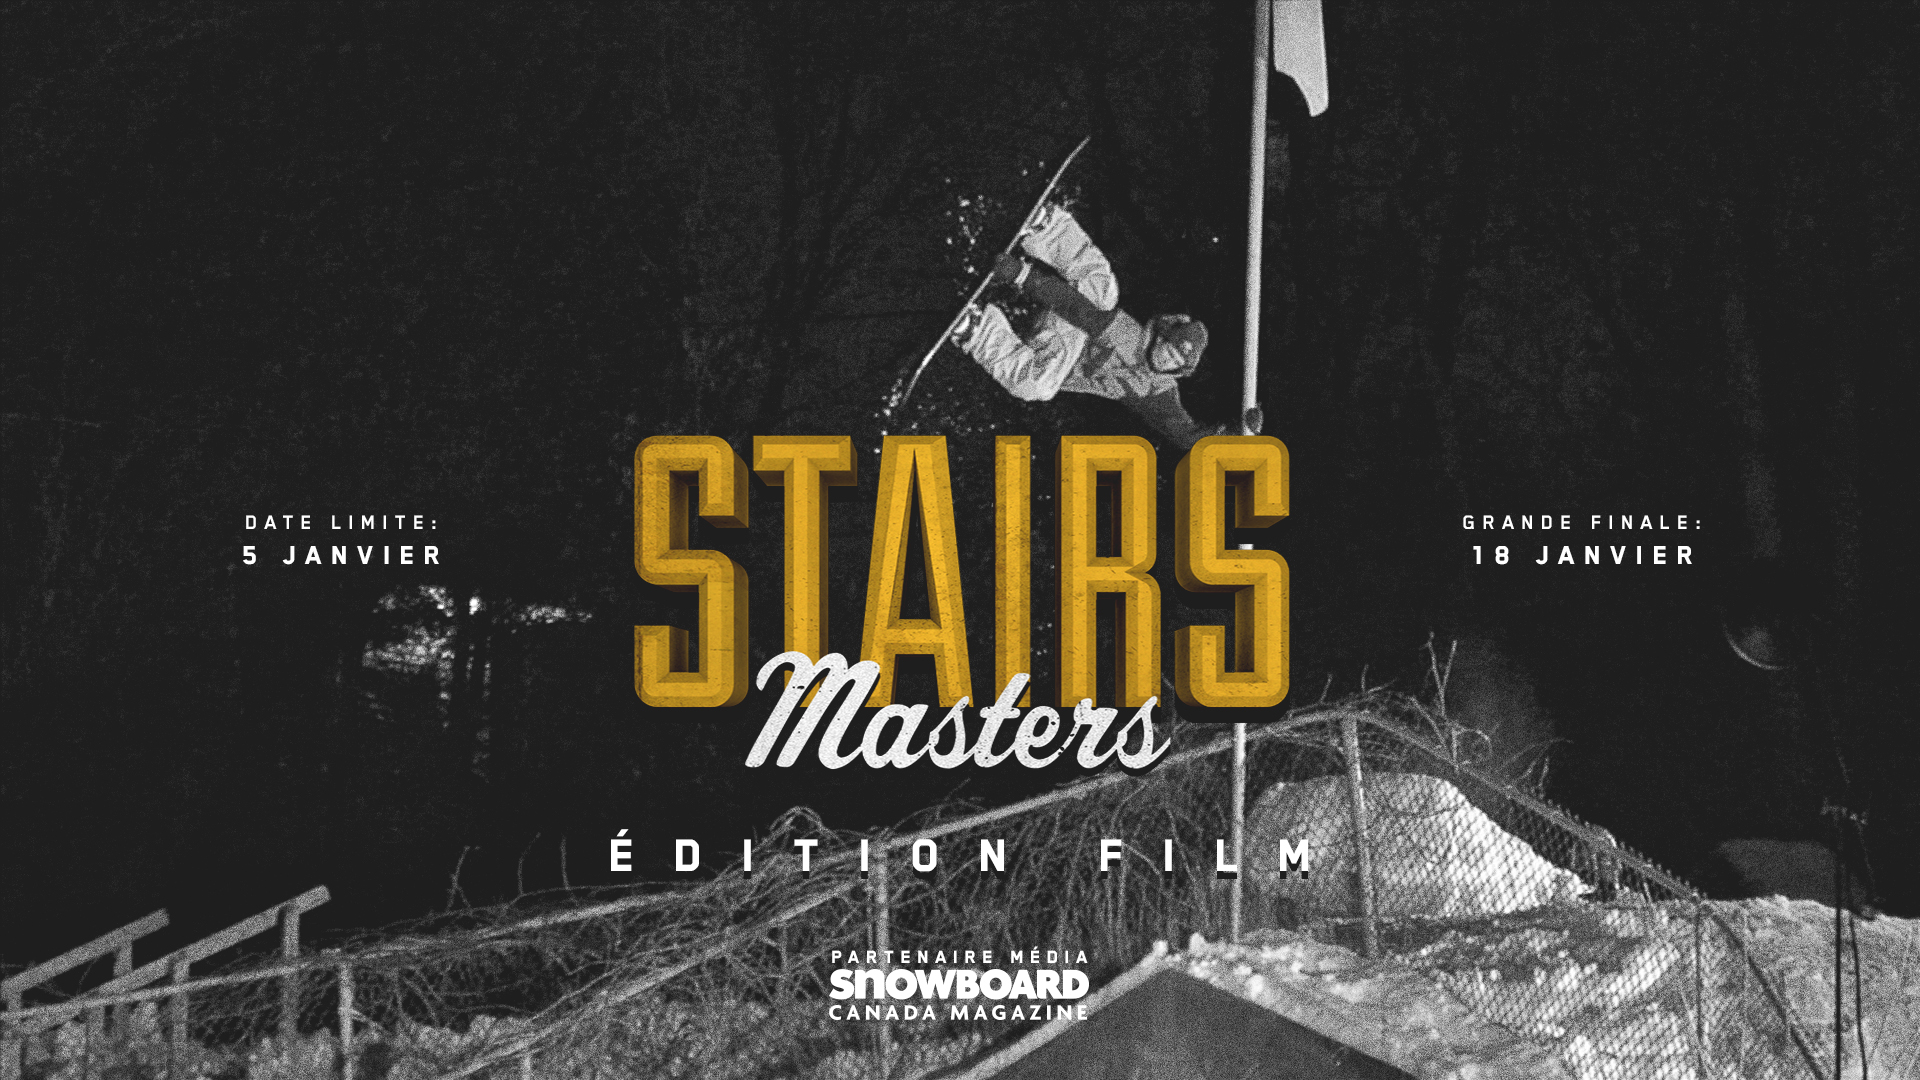 Le Stairsmasters